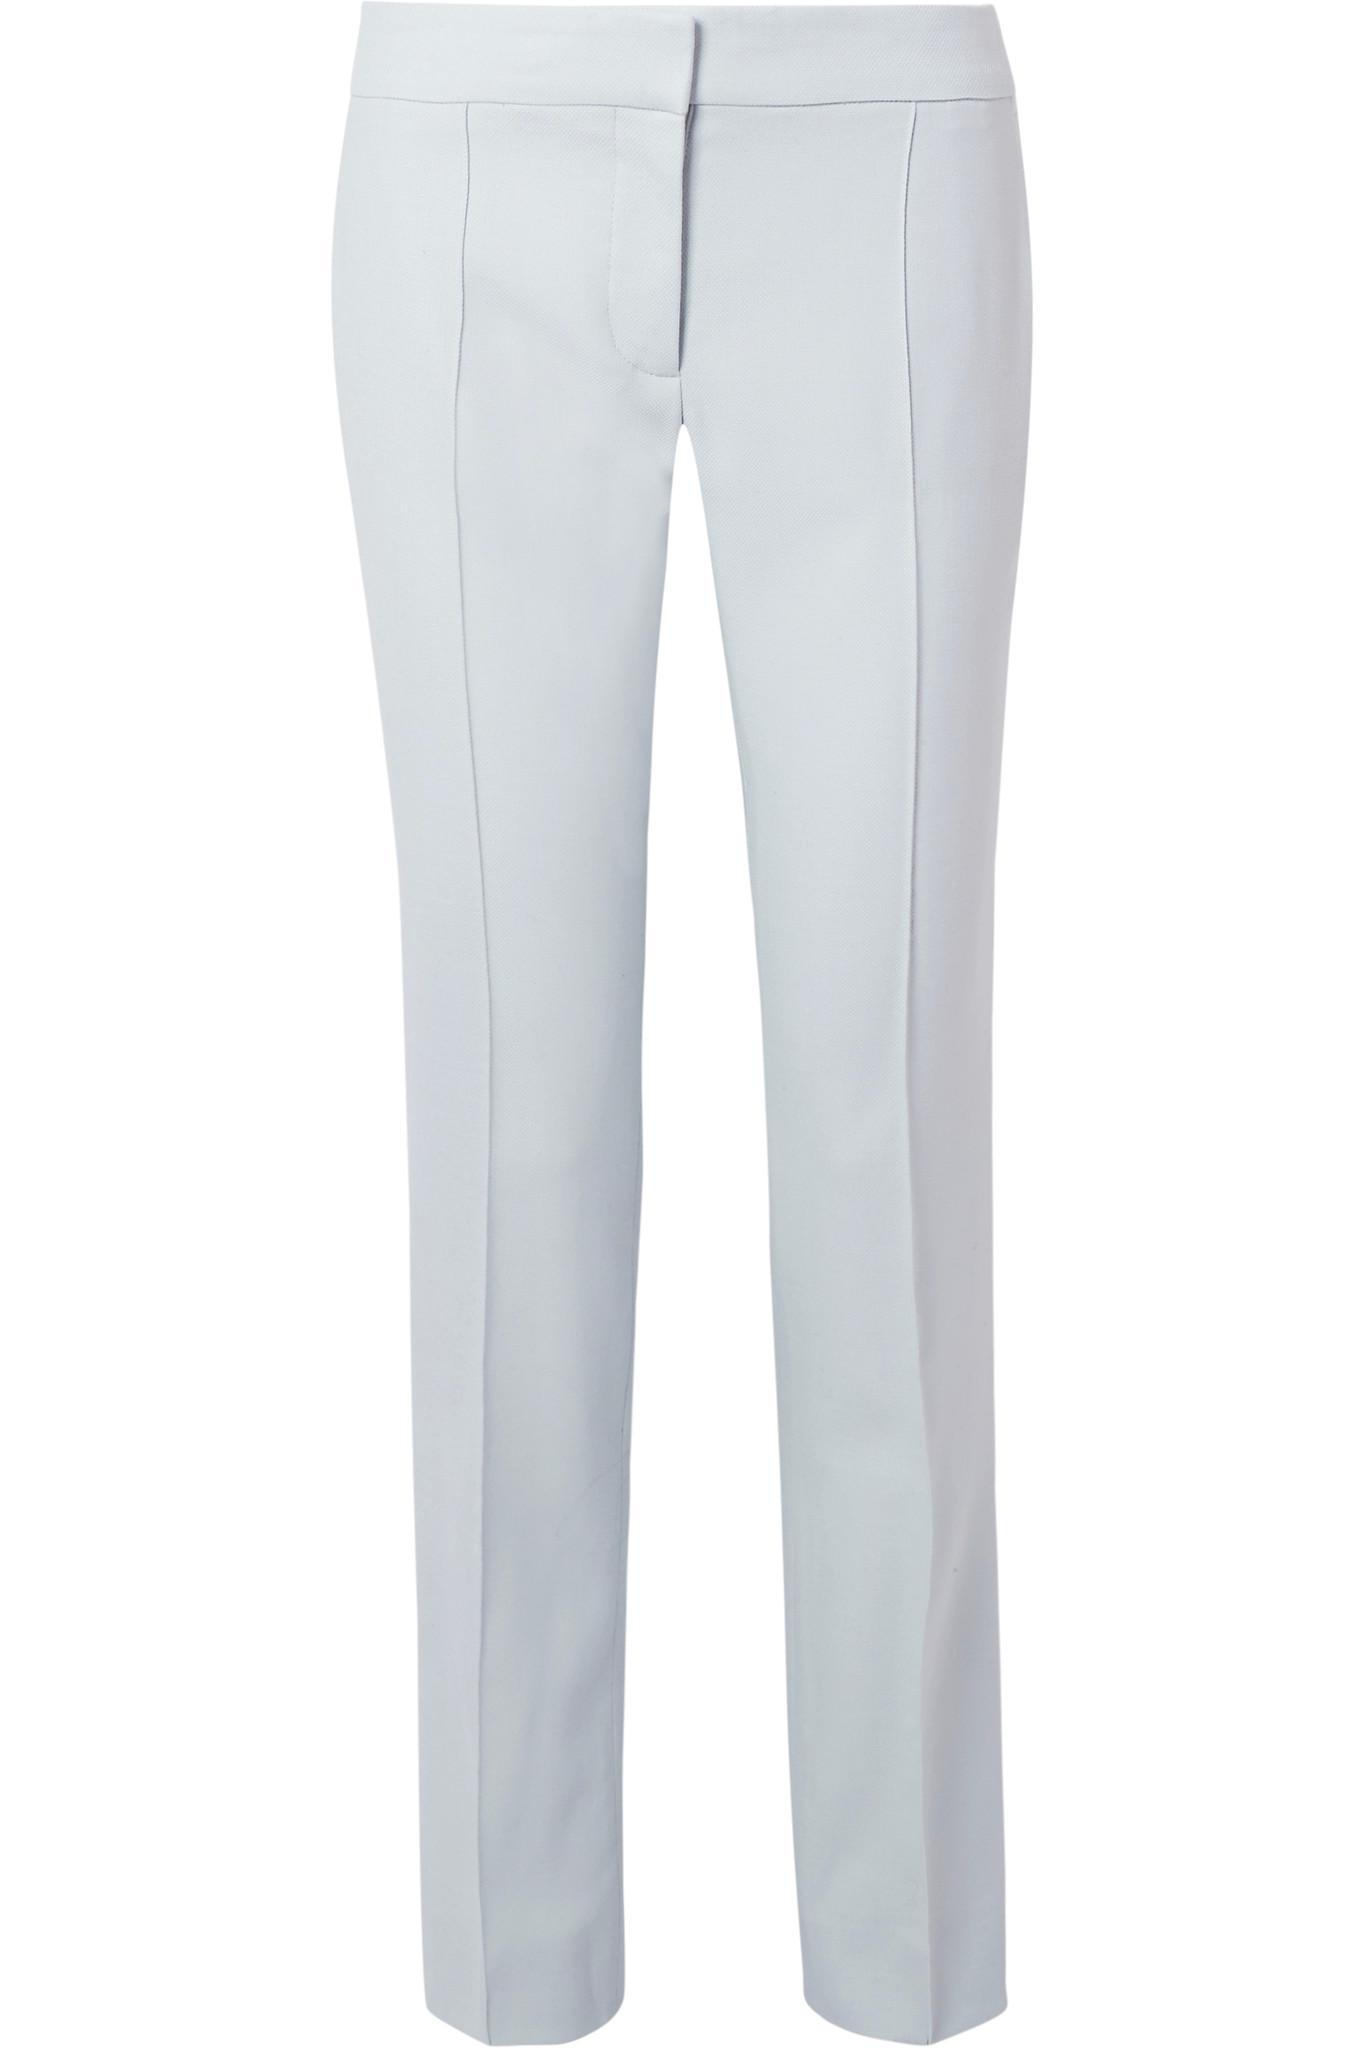 Clearance Newest Anna Pleated Wool-piqué Straight-leg Pants - Sky blue Stella McCartney Cheap Sale The Cheapest Discount Official Site Best Buy Buy Cheap For Nice h3yRy03kkN